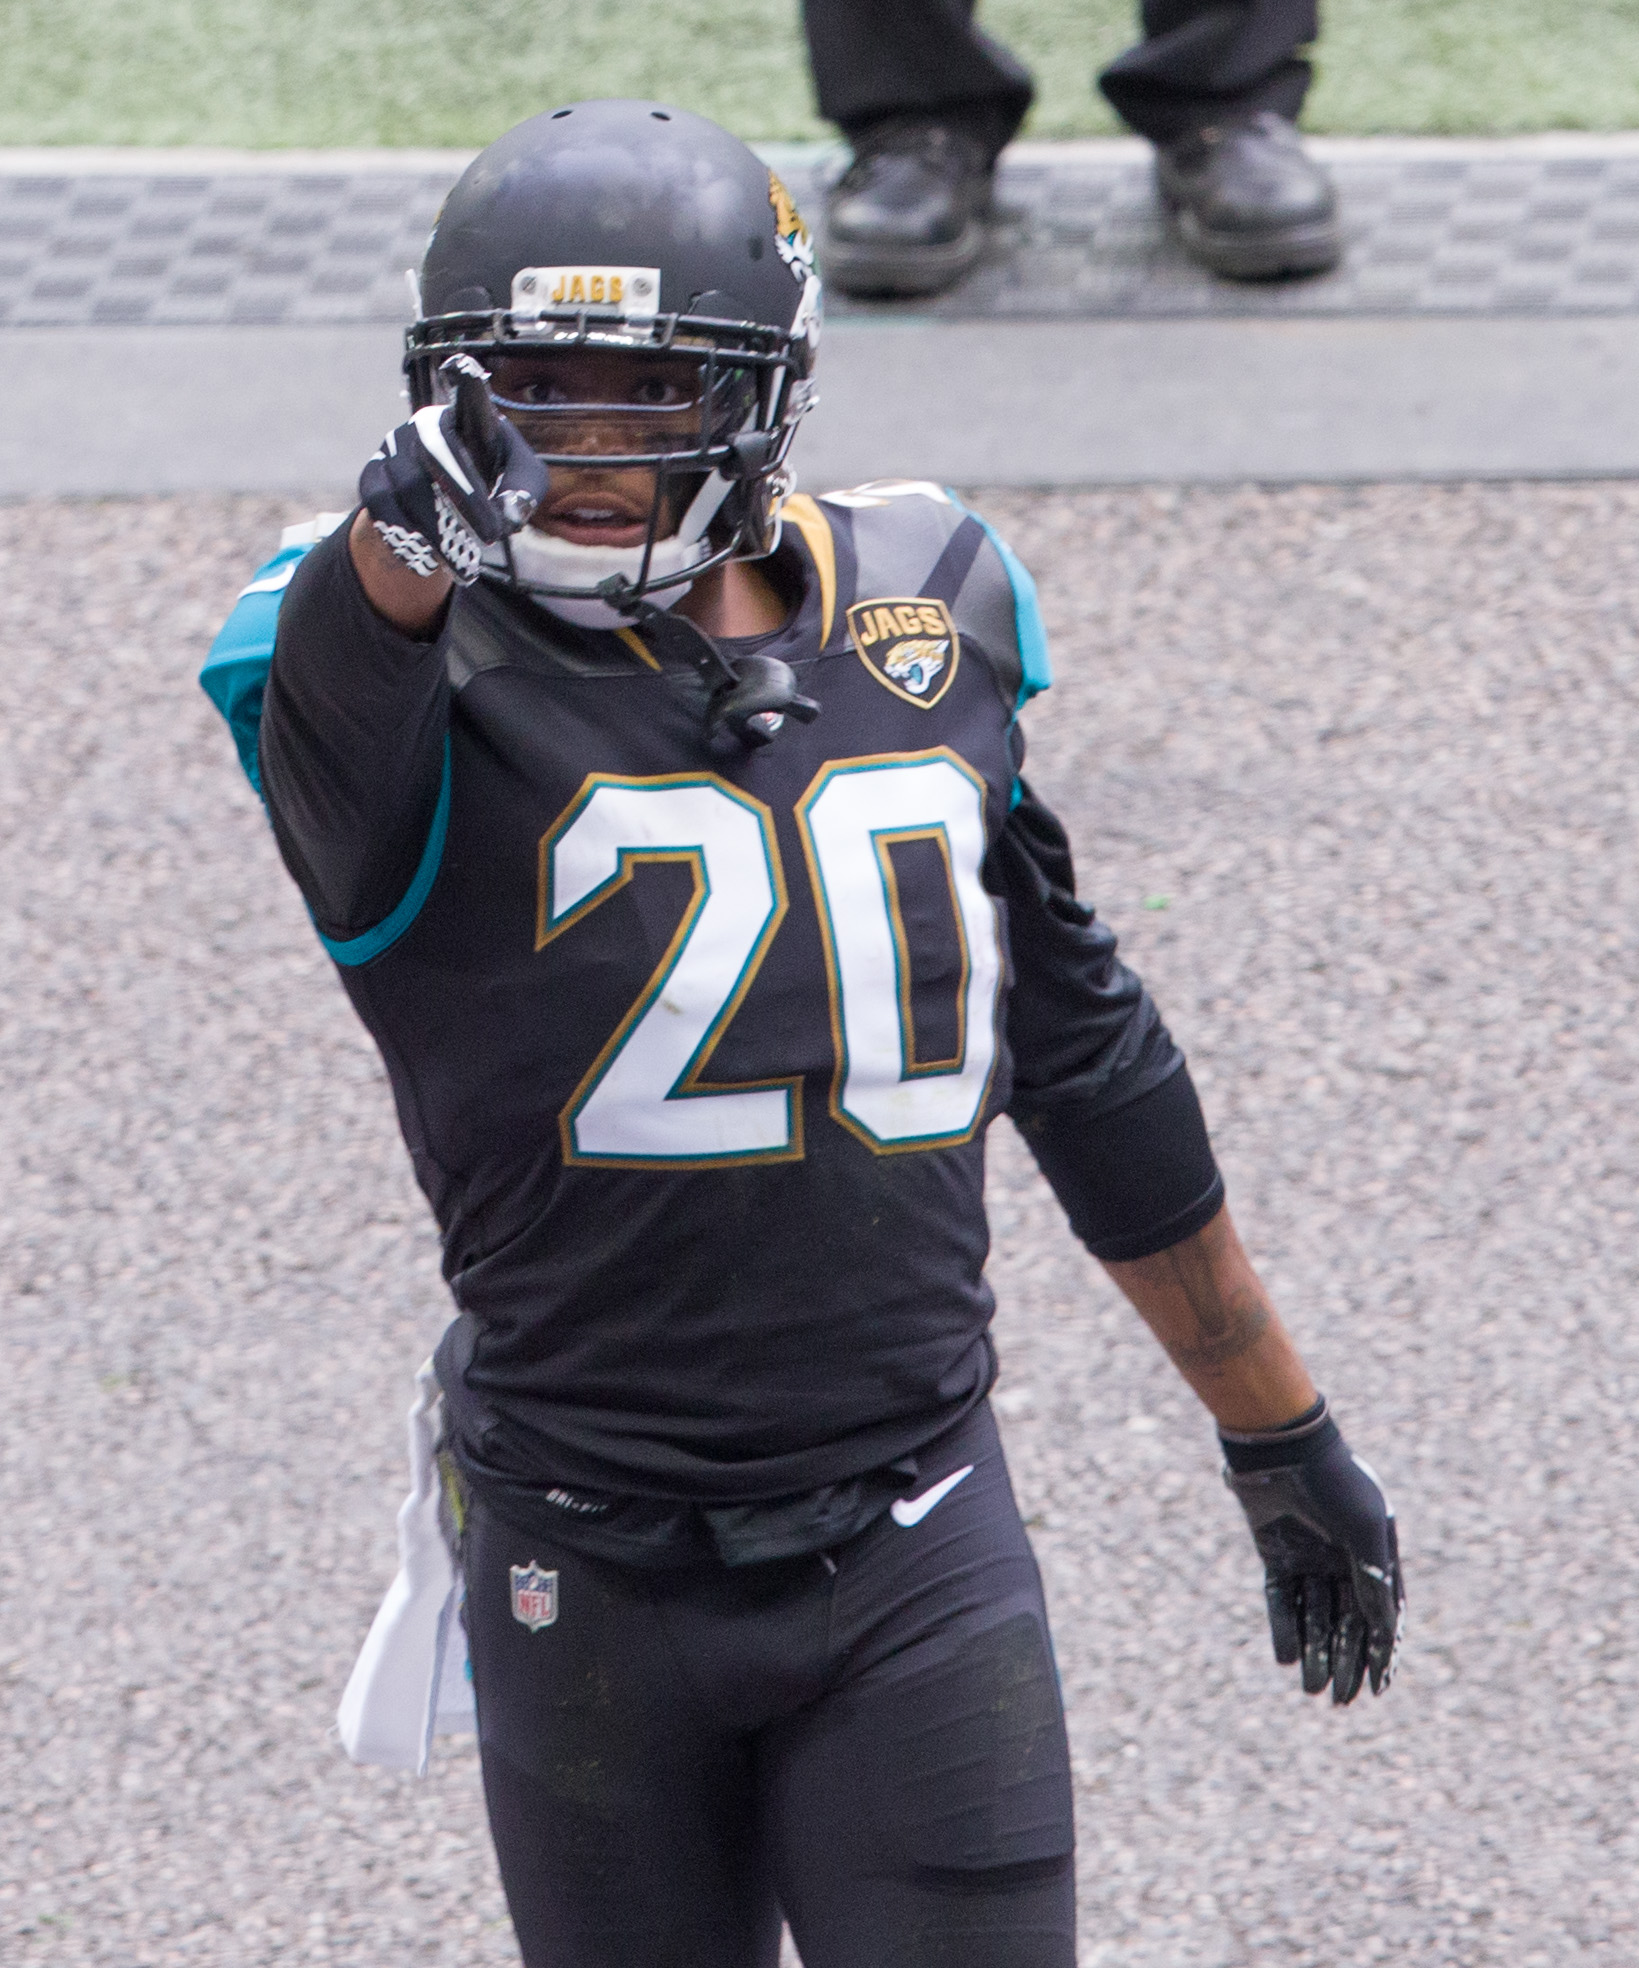 Jacksonville Jaguars corner back Jalen Ramsey  (20) points to the fans in the stands following a touchdown. Baltimore Ravens and the Jacksonville Jaguars play in the NFL International Series at Wembley Stadium in London on Sunday, Sep 24 . photo: Dave Shopland/ NFL